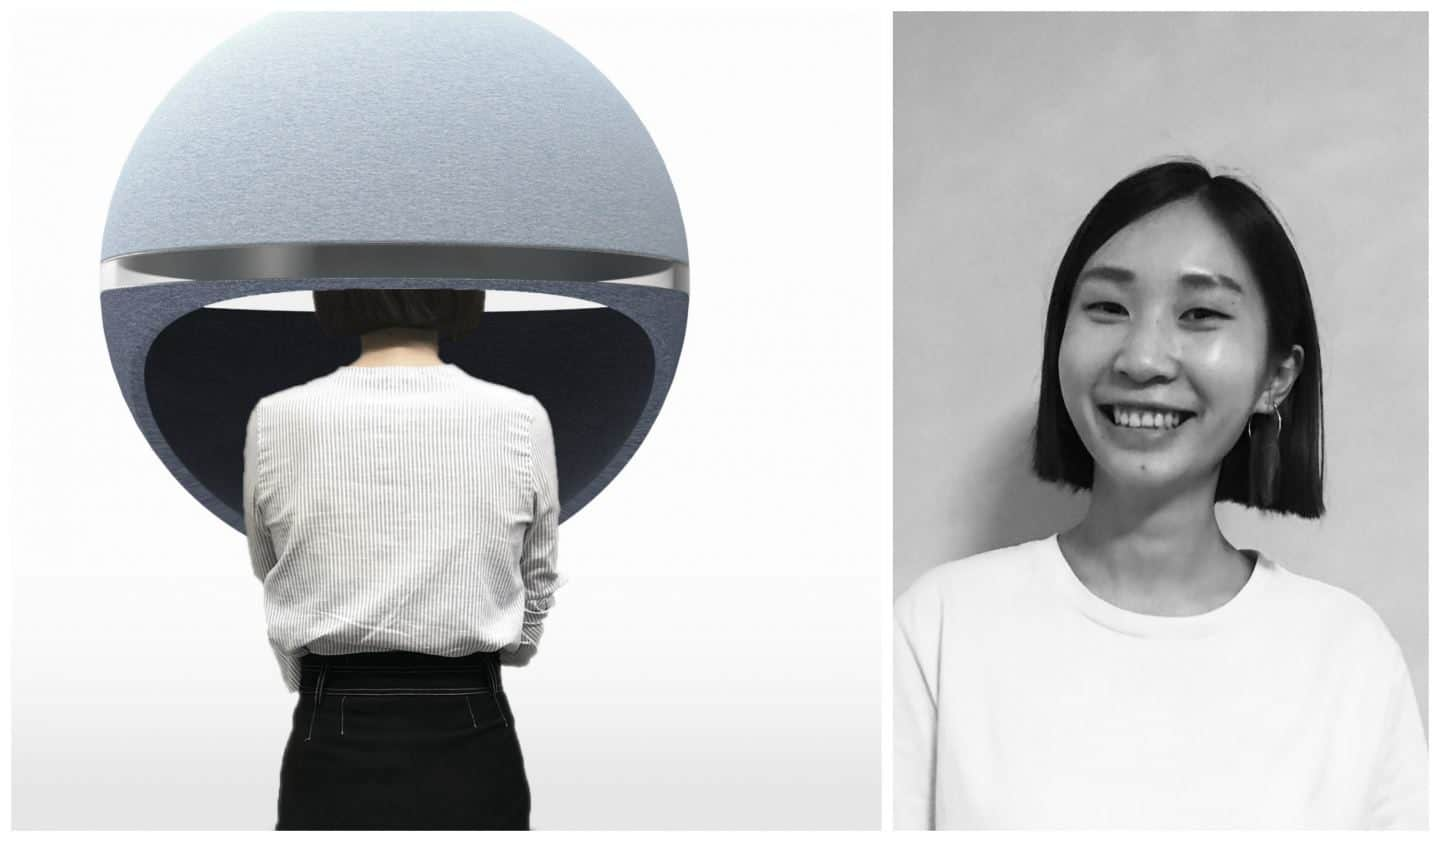 An acoustic sphere that you can pop your head inside to get privacy in public spaces. Designed by Rongjie Yang, it was presented at Pure Talents at Imm Cologne 2019